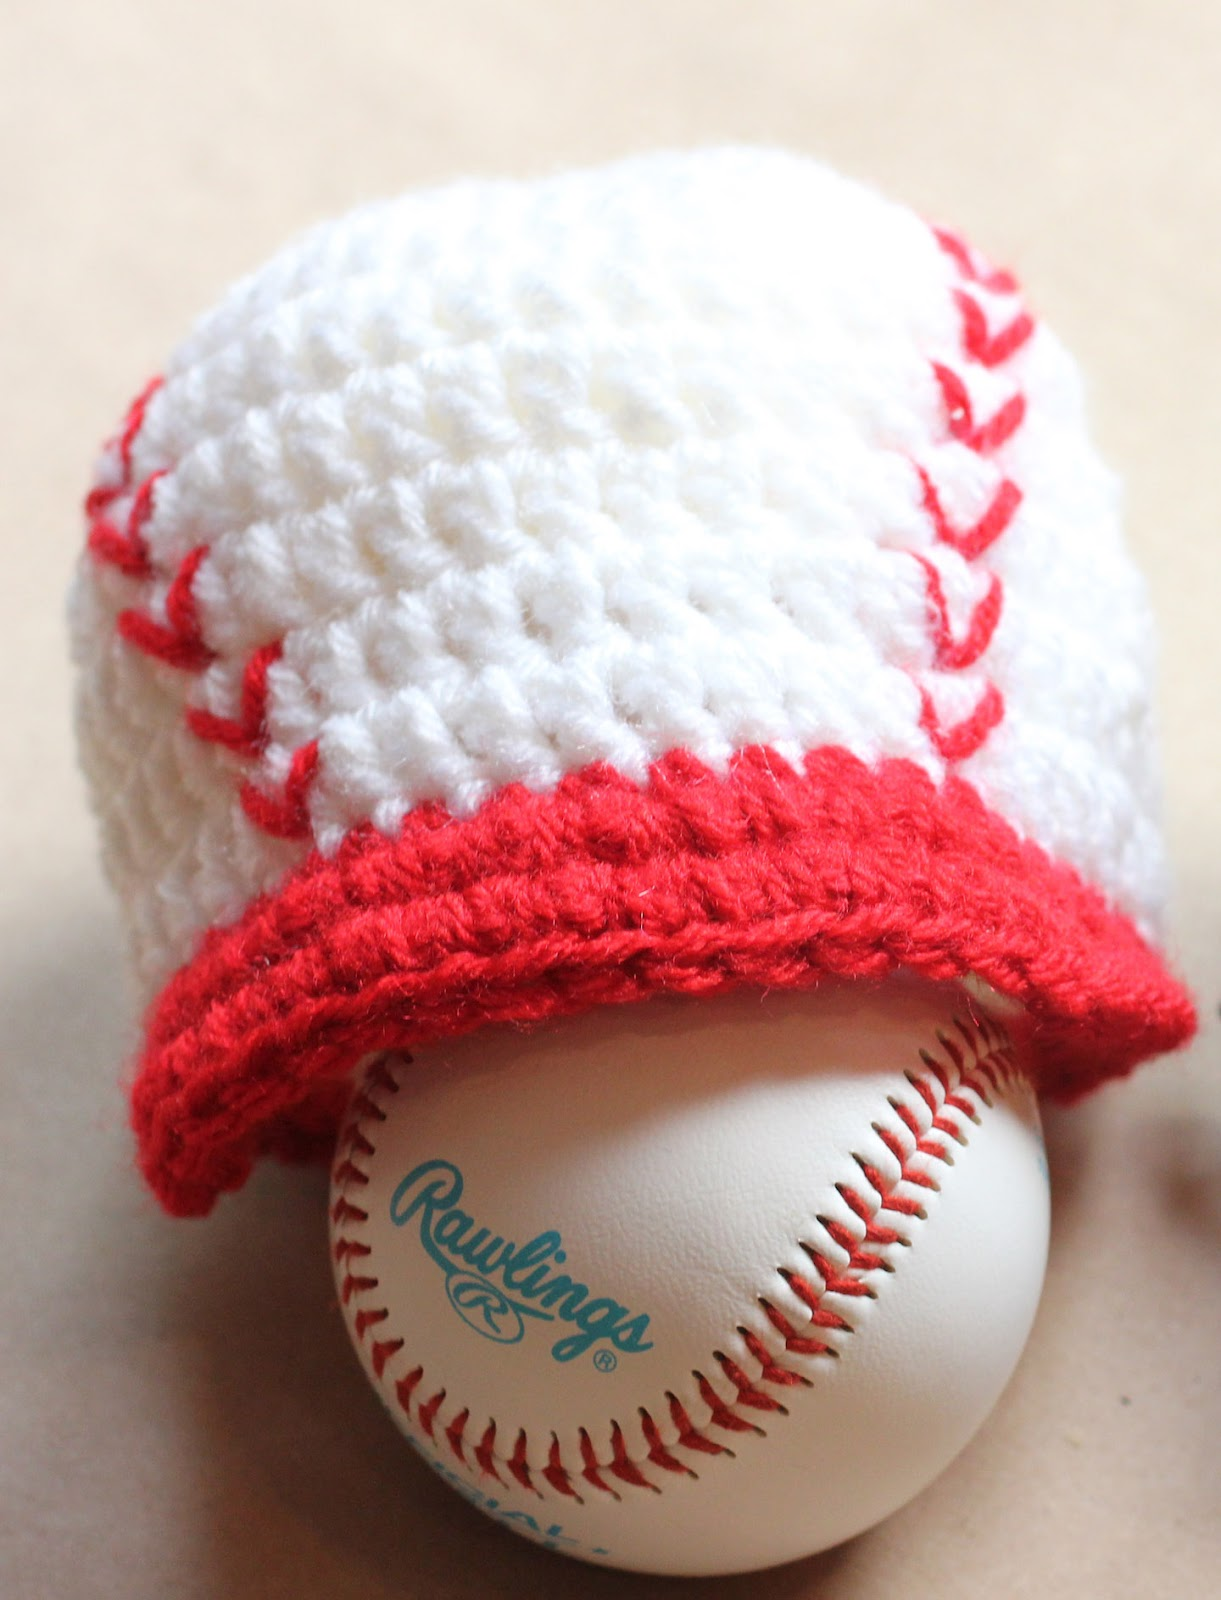 Crochet baseball cap repeat crafter me here are some links to free crochet brimmed hat patterns that could be made into a baseball cap bankloansurffo Gallery